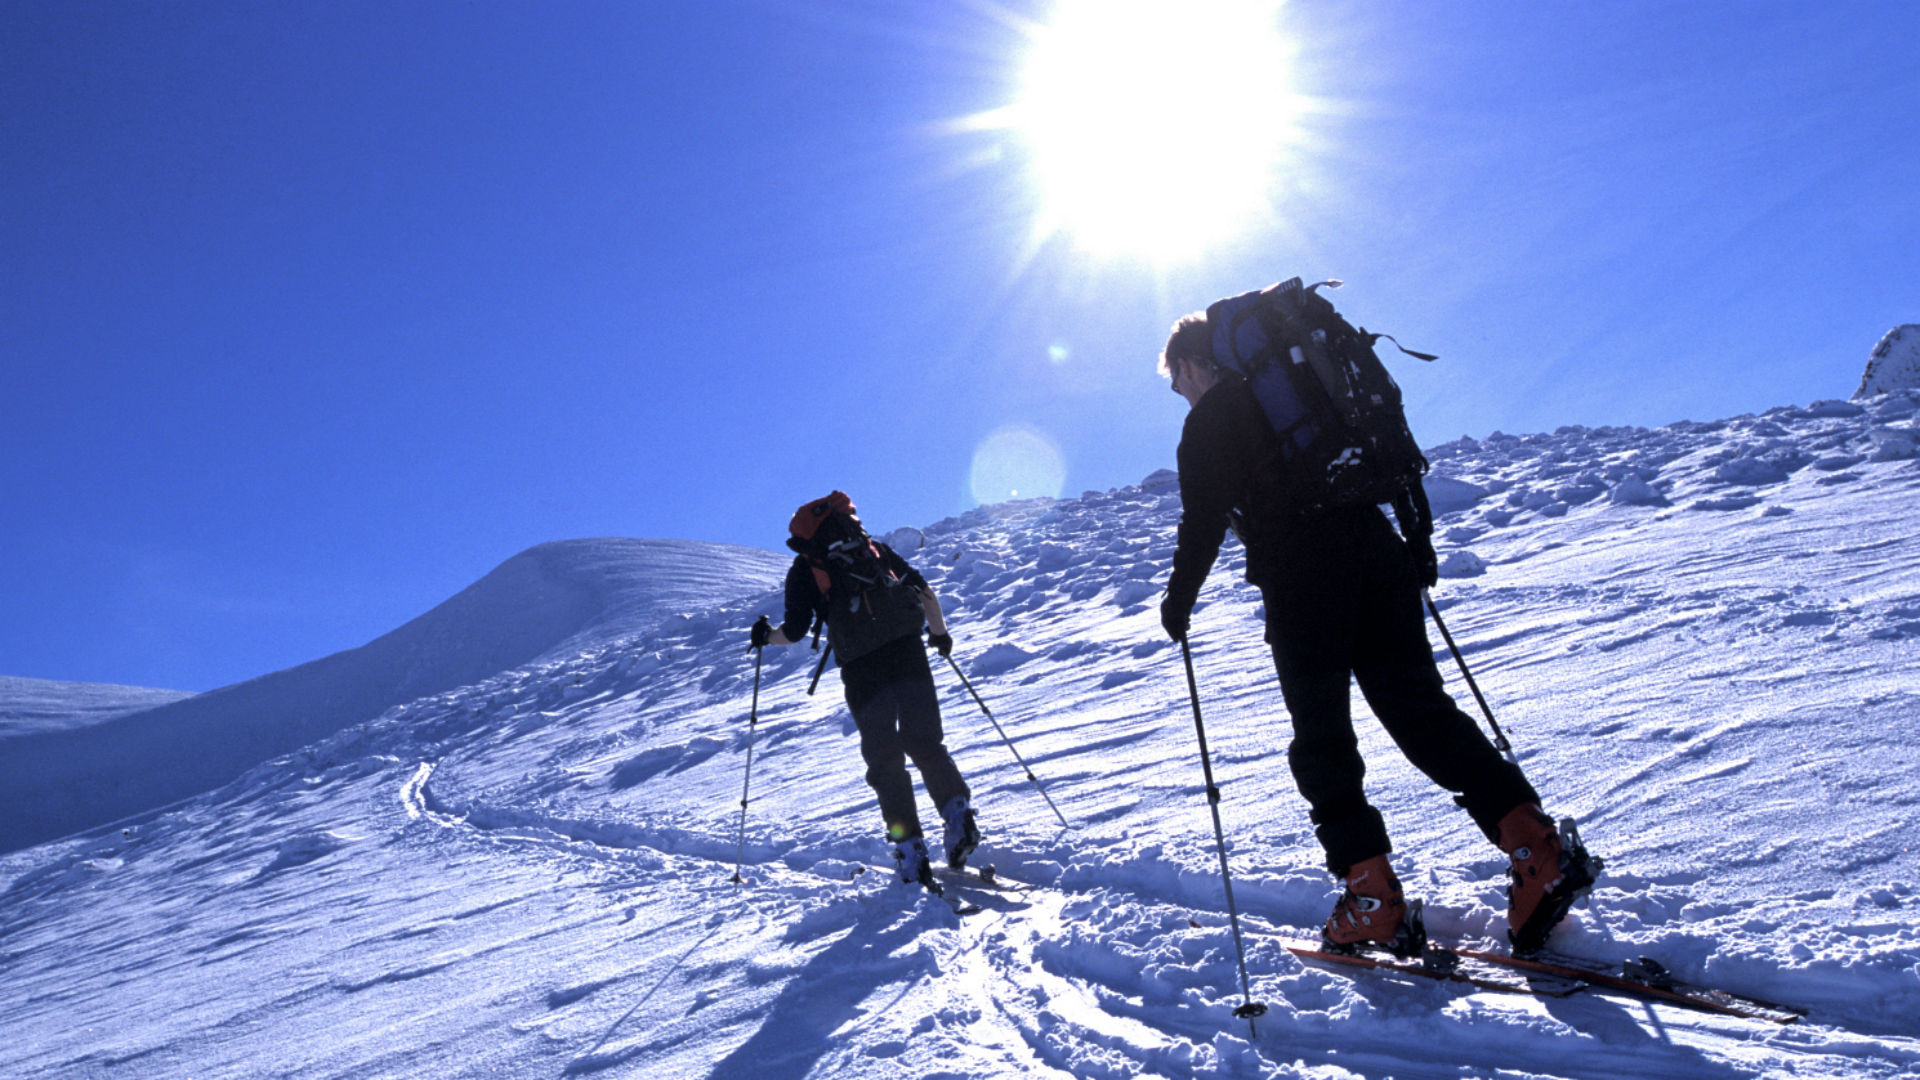 Ski touring in Cairngorms, Scotland